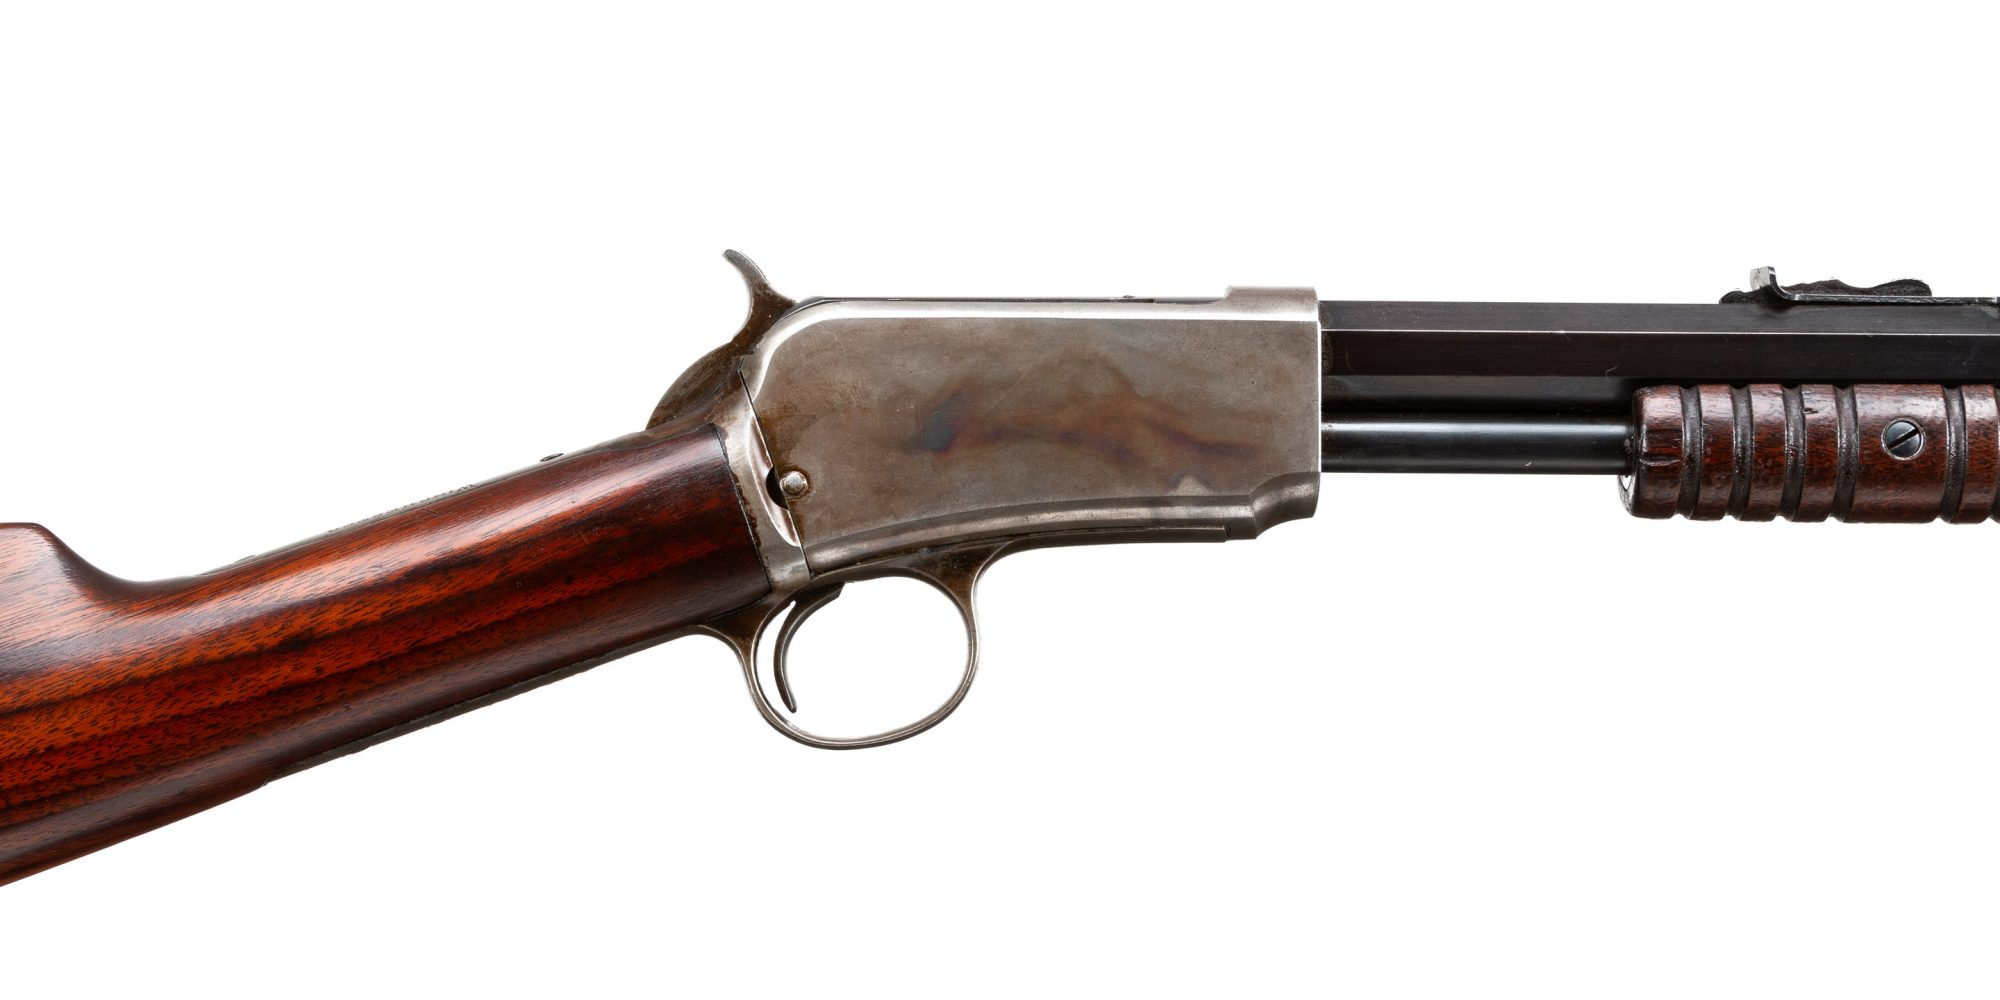 Photo of a pre-owned Winchester Model 1890, sold as-is by Turnbull Restoration in Bloomfield, NY